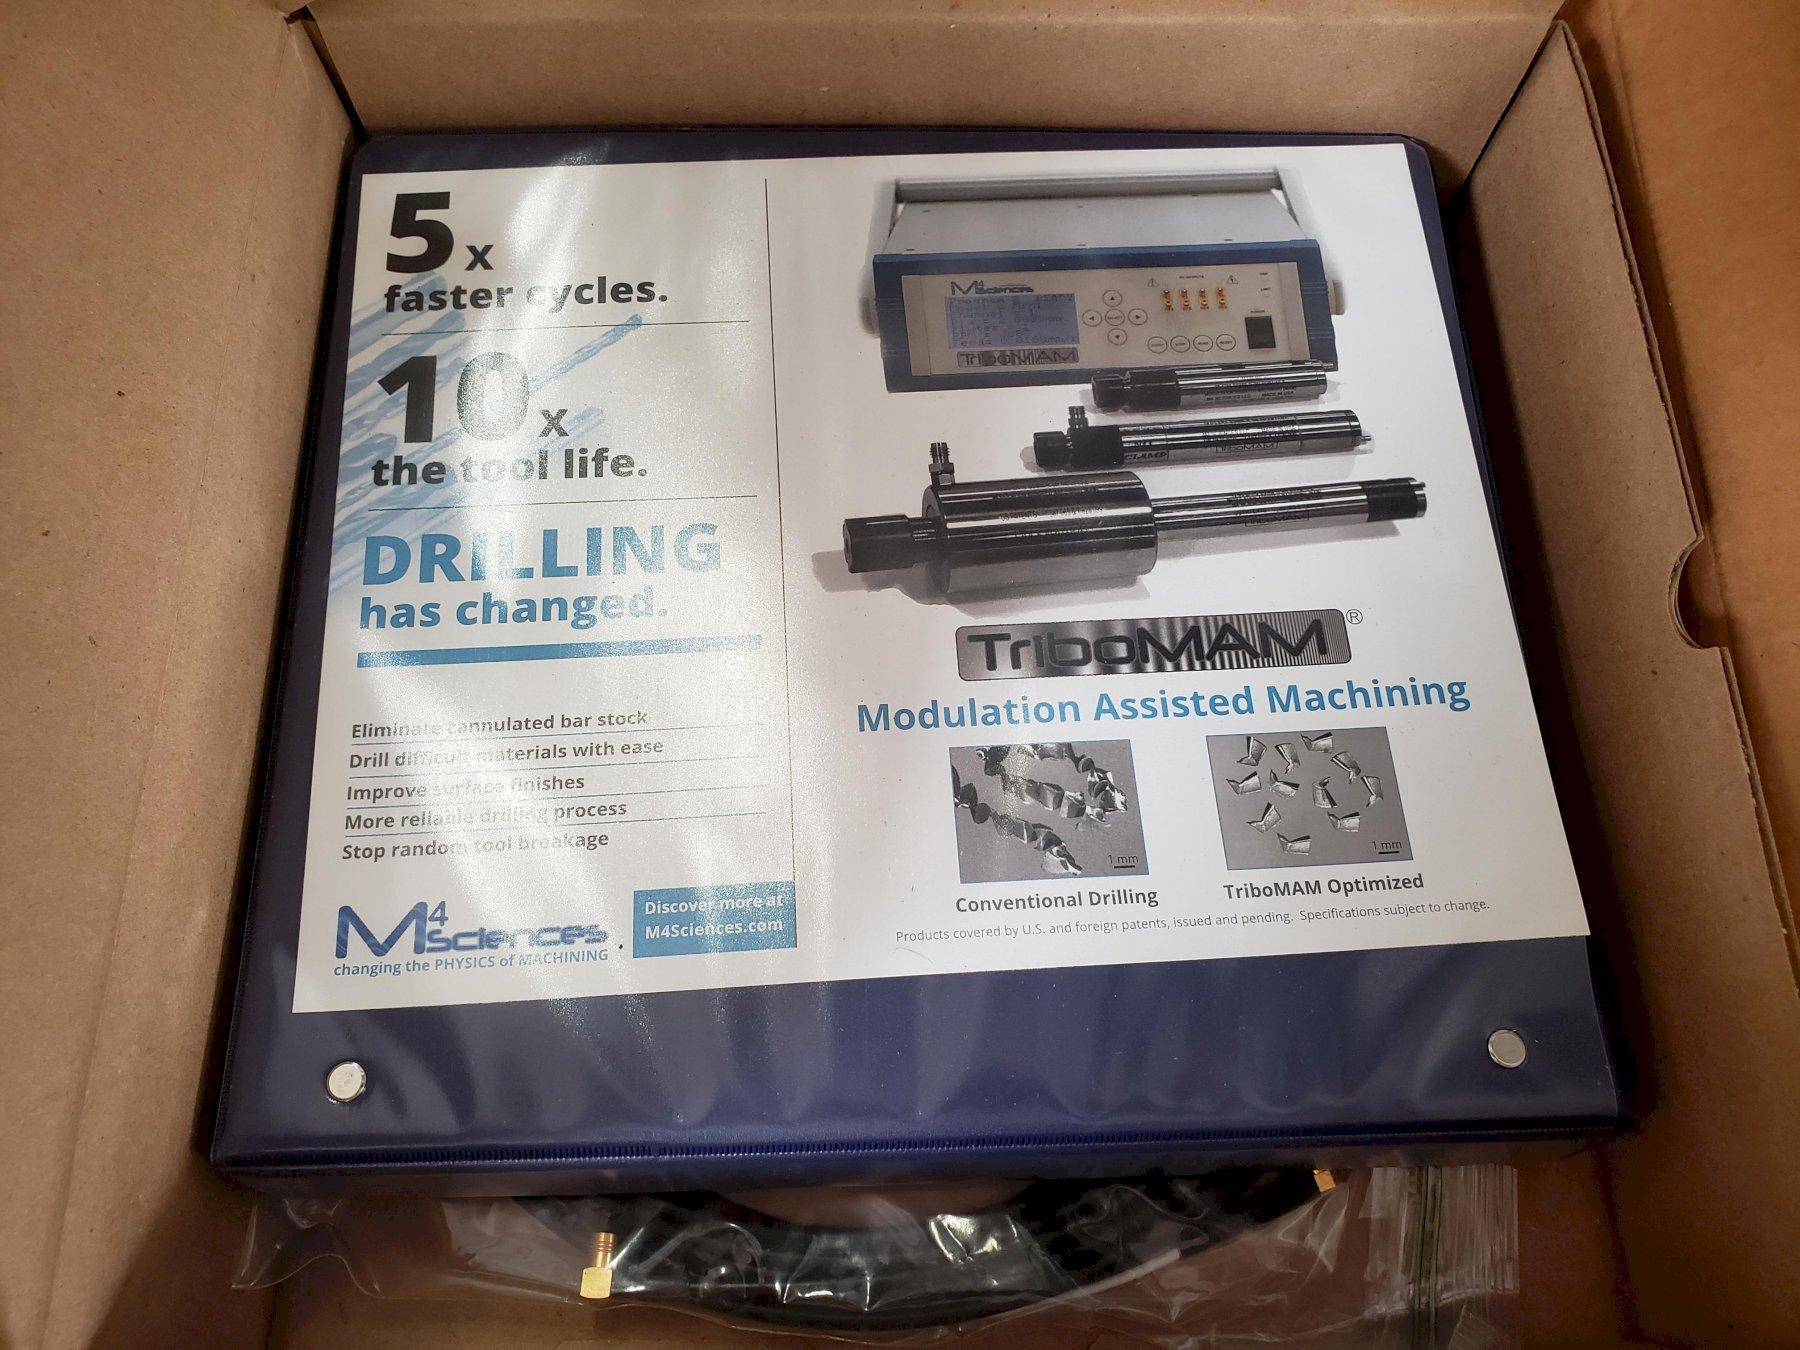 M4 Sciences TriboMAM Mini Drilling System 2017 with MEC11033 Micro-Embedded Controller, ER-11 Collet Nose, and High Pressure Coolant Package.